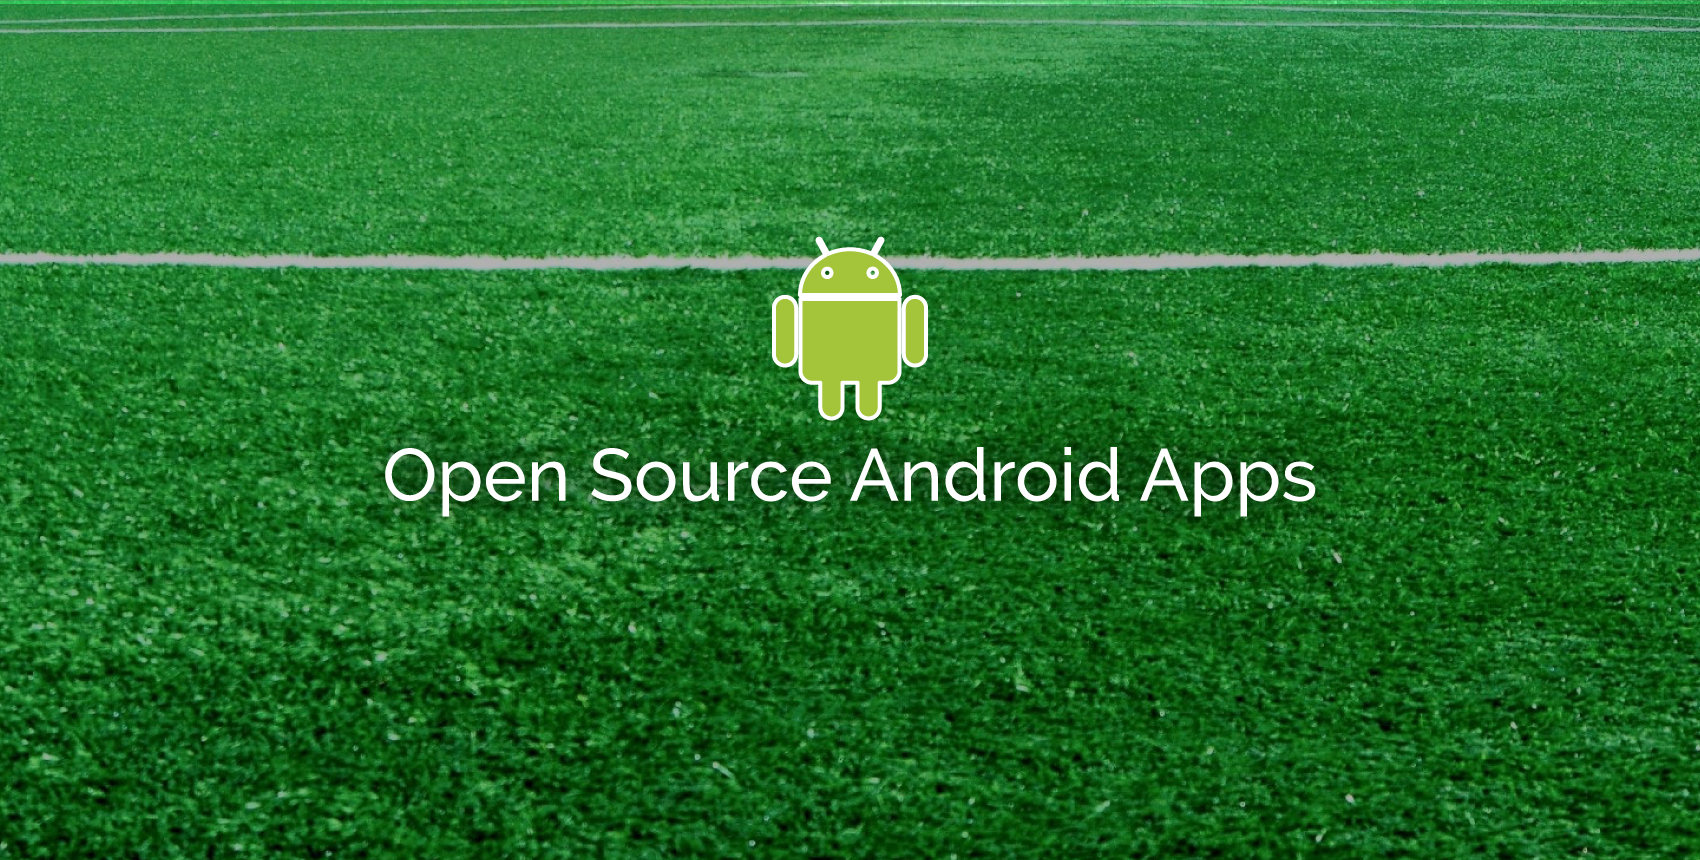 Open-Source Android Apps